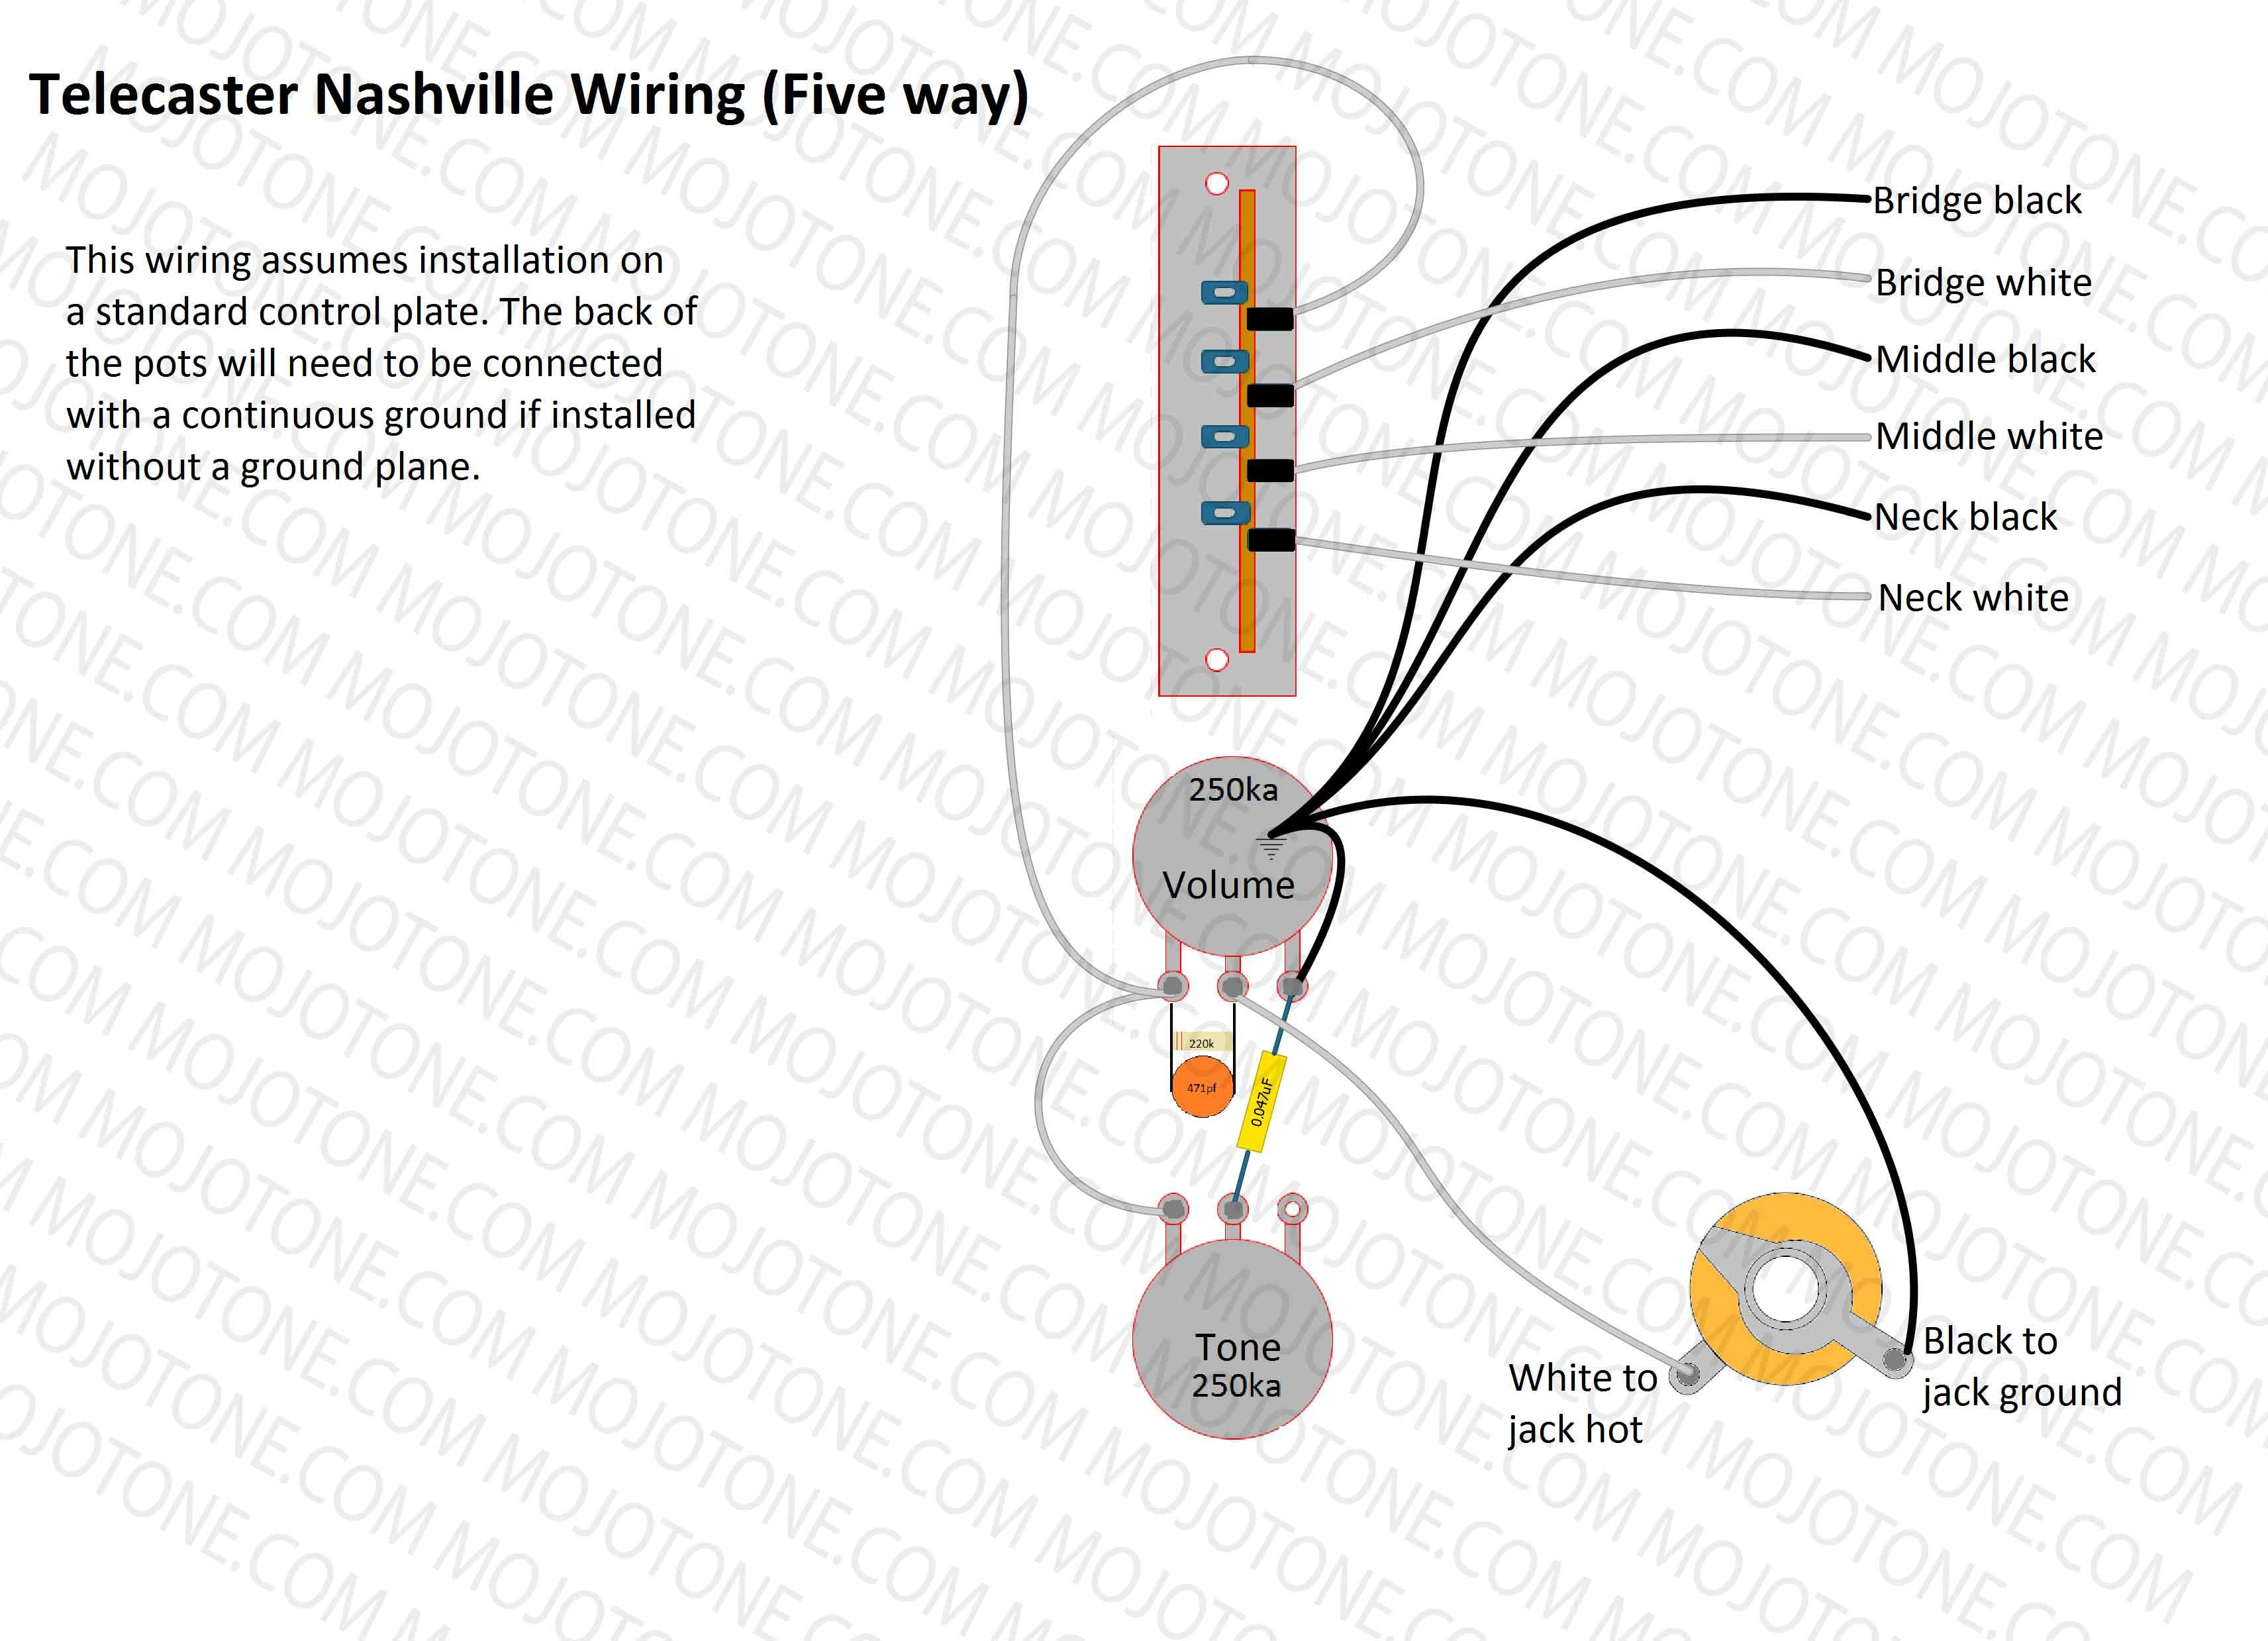 fender s1 wiring diagram telecaster google search wirings telecaster nashville wiring diagram